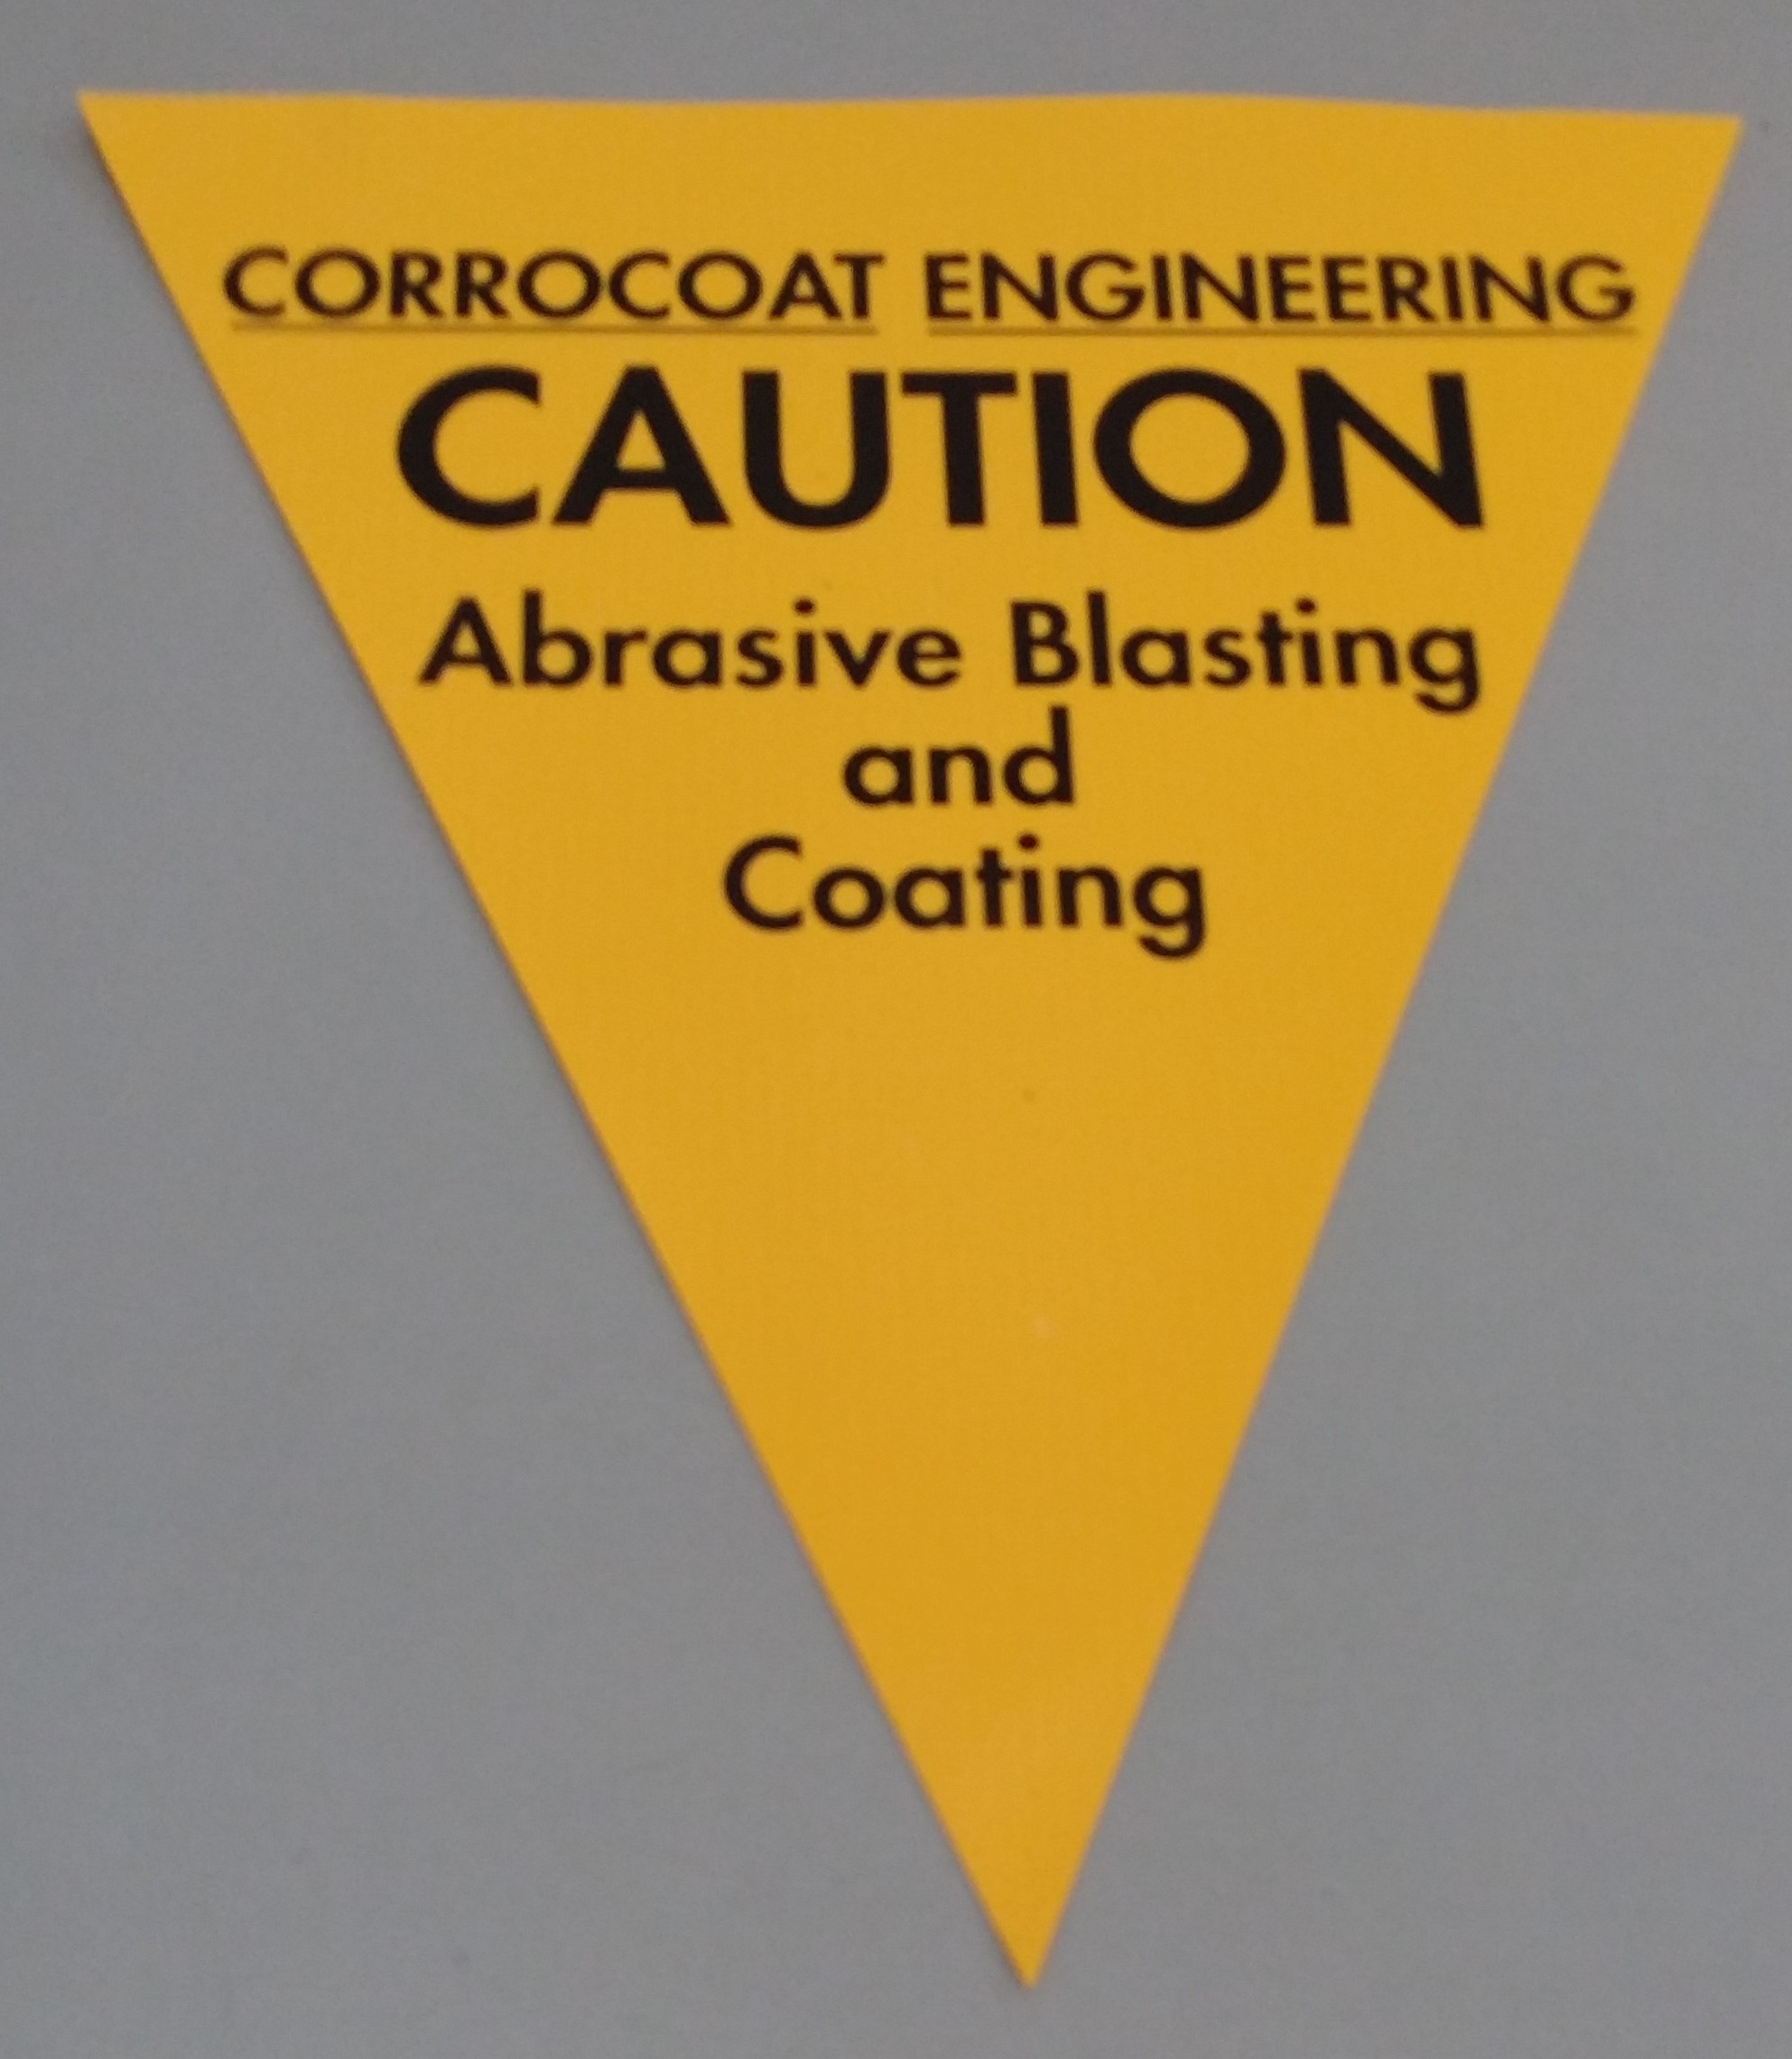 Corrocoat Engineering Caution (yellow)